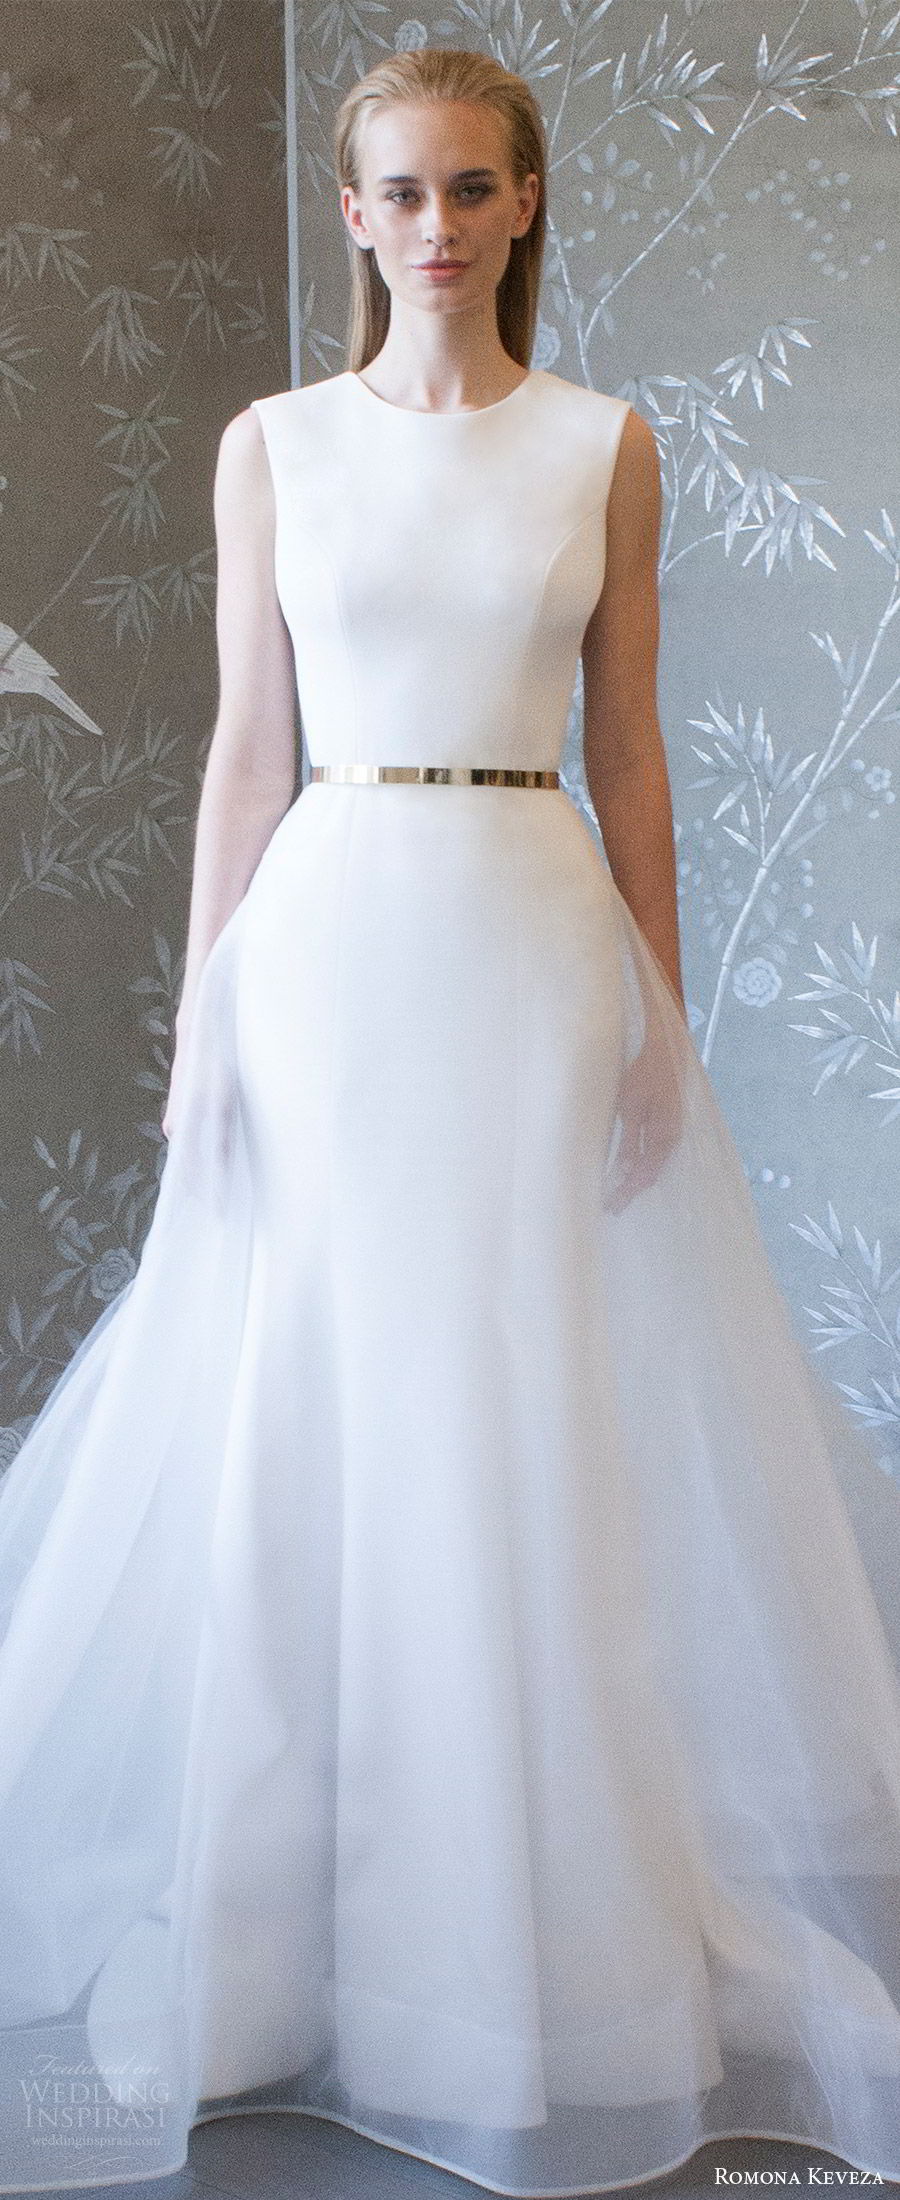 romona keveza spring 2018 bridal sleeveless jewel neck sheath trumpet wedding dress sheer overskirt belt (rk8400) zv clean elegant modern sweep train